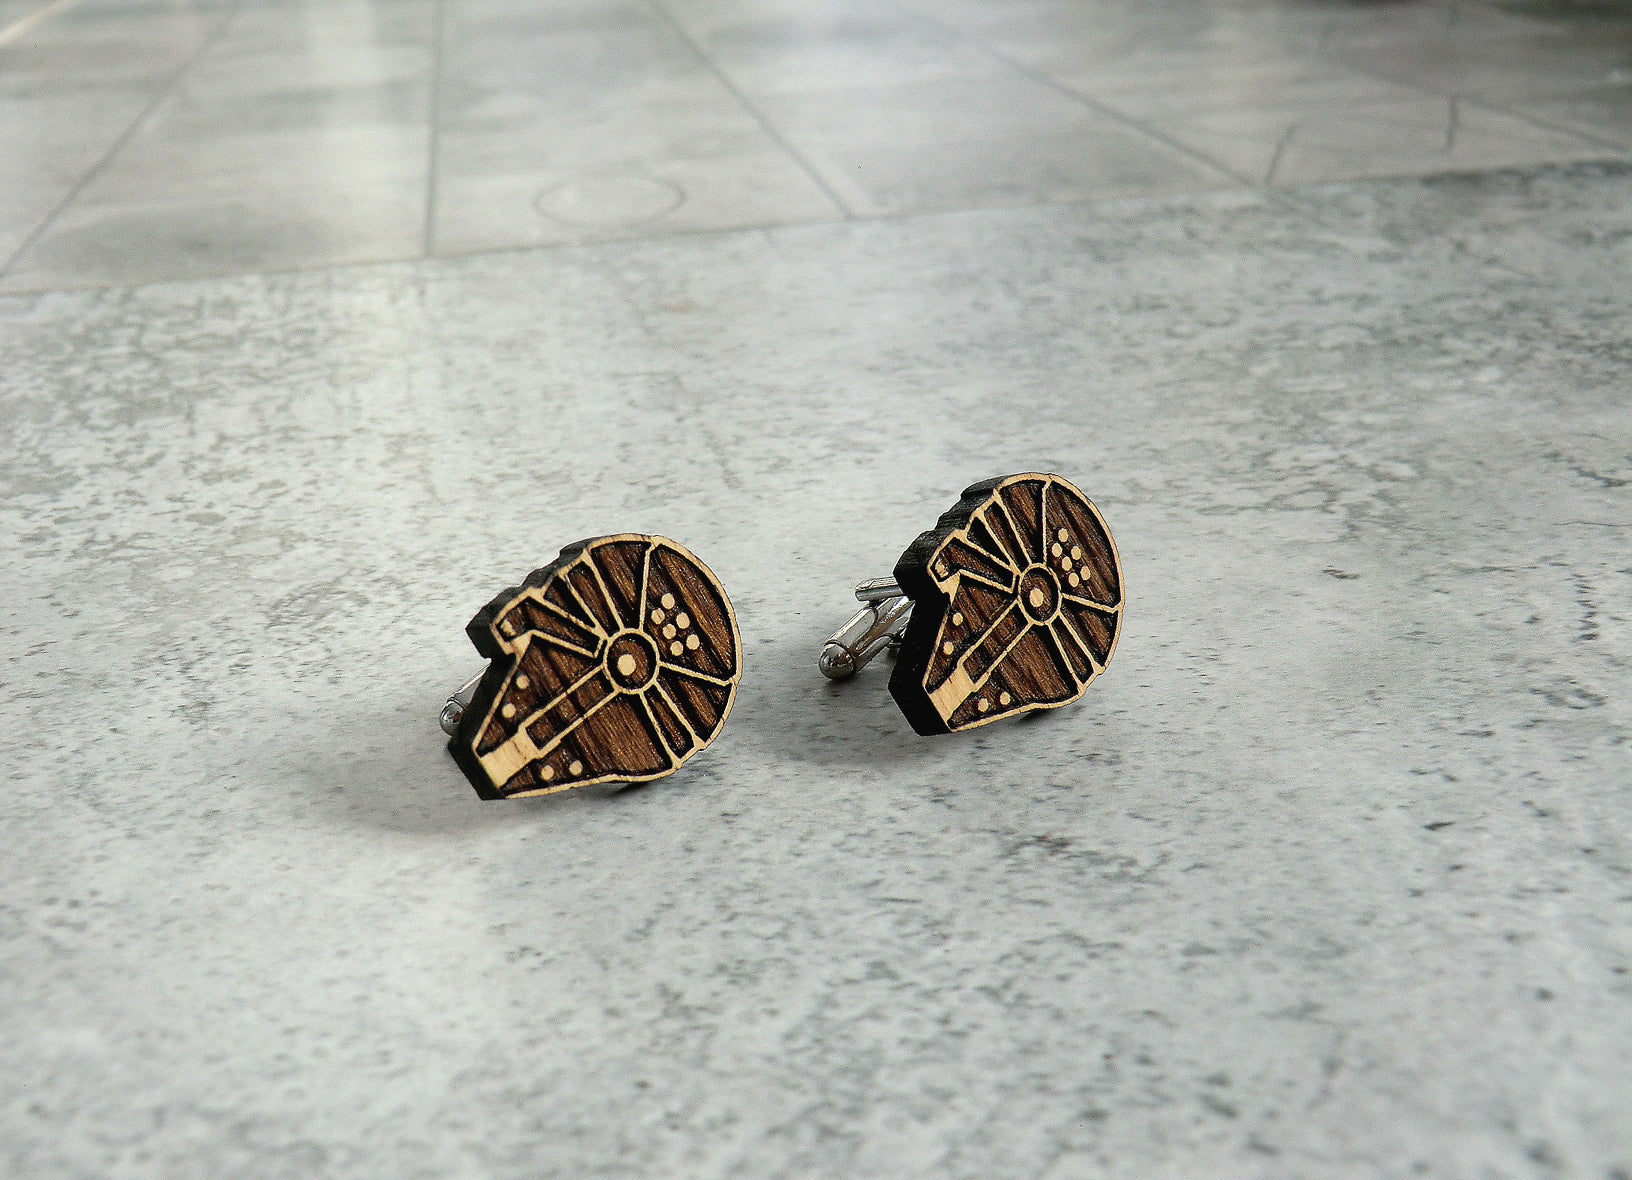 Star Wars Cufflinks Millennium Falcon Wooden Cufflinks